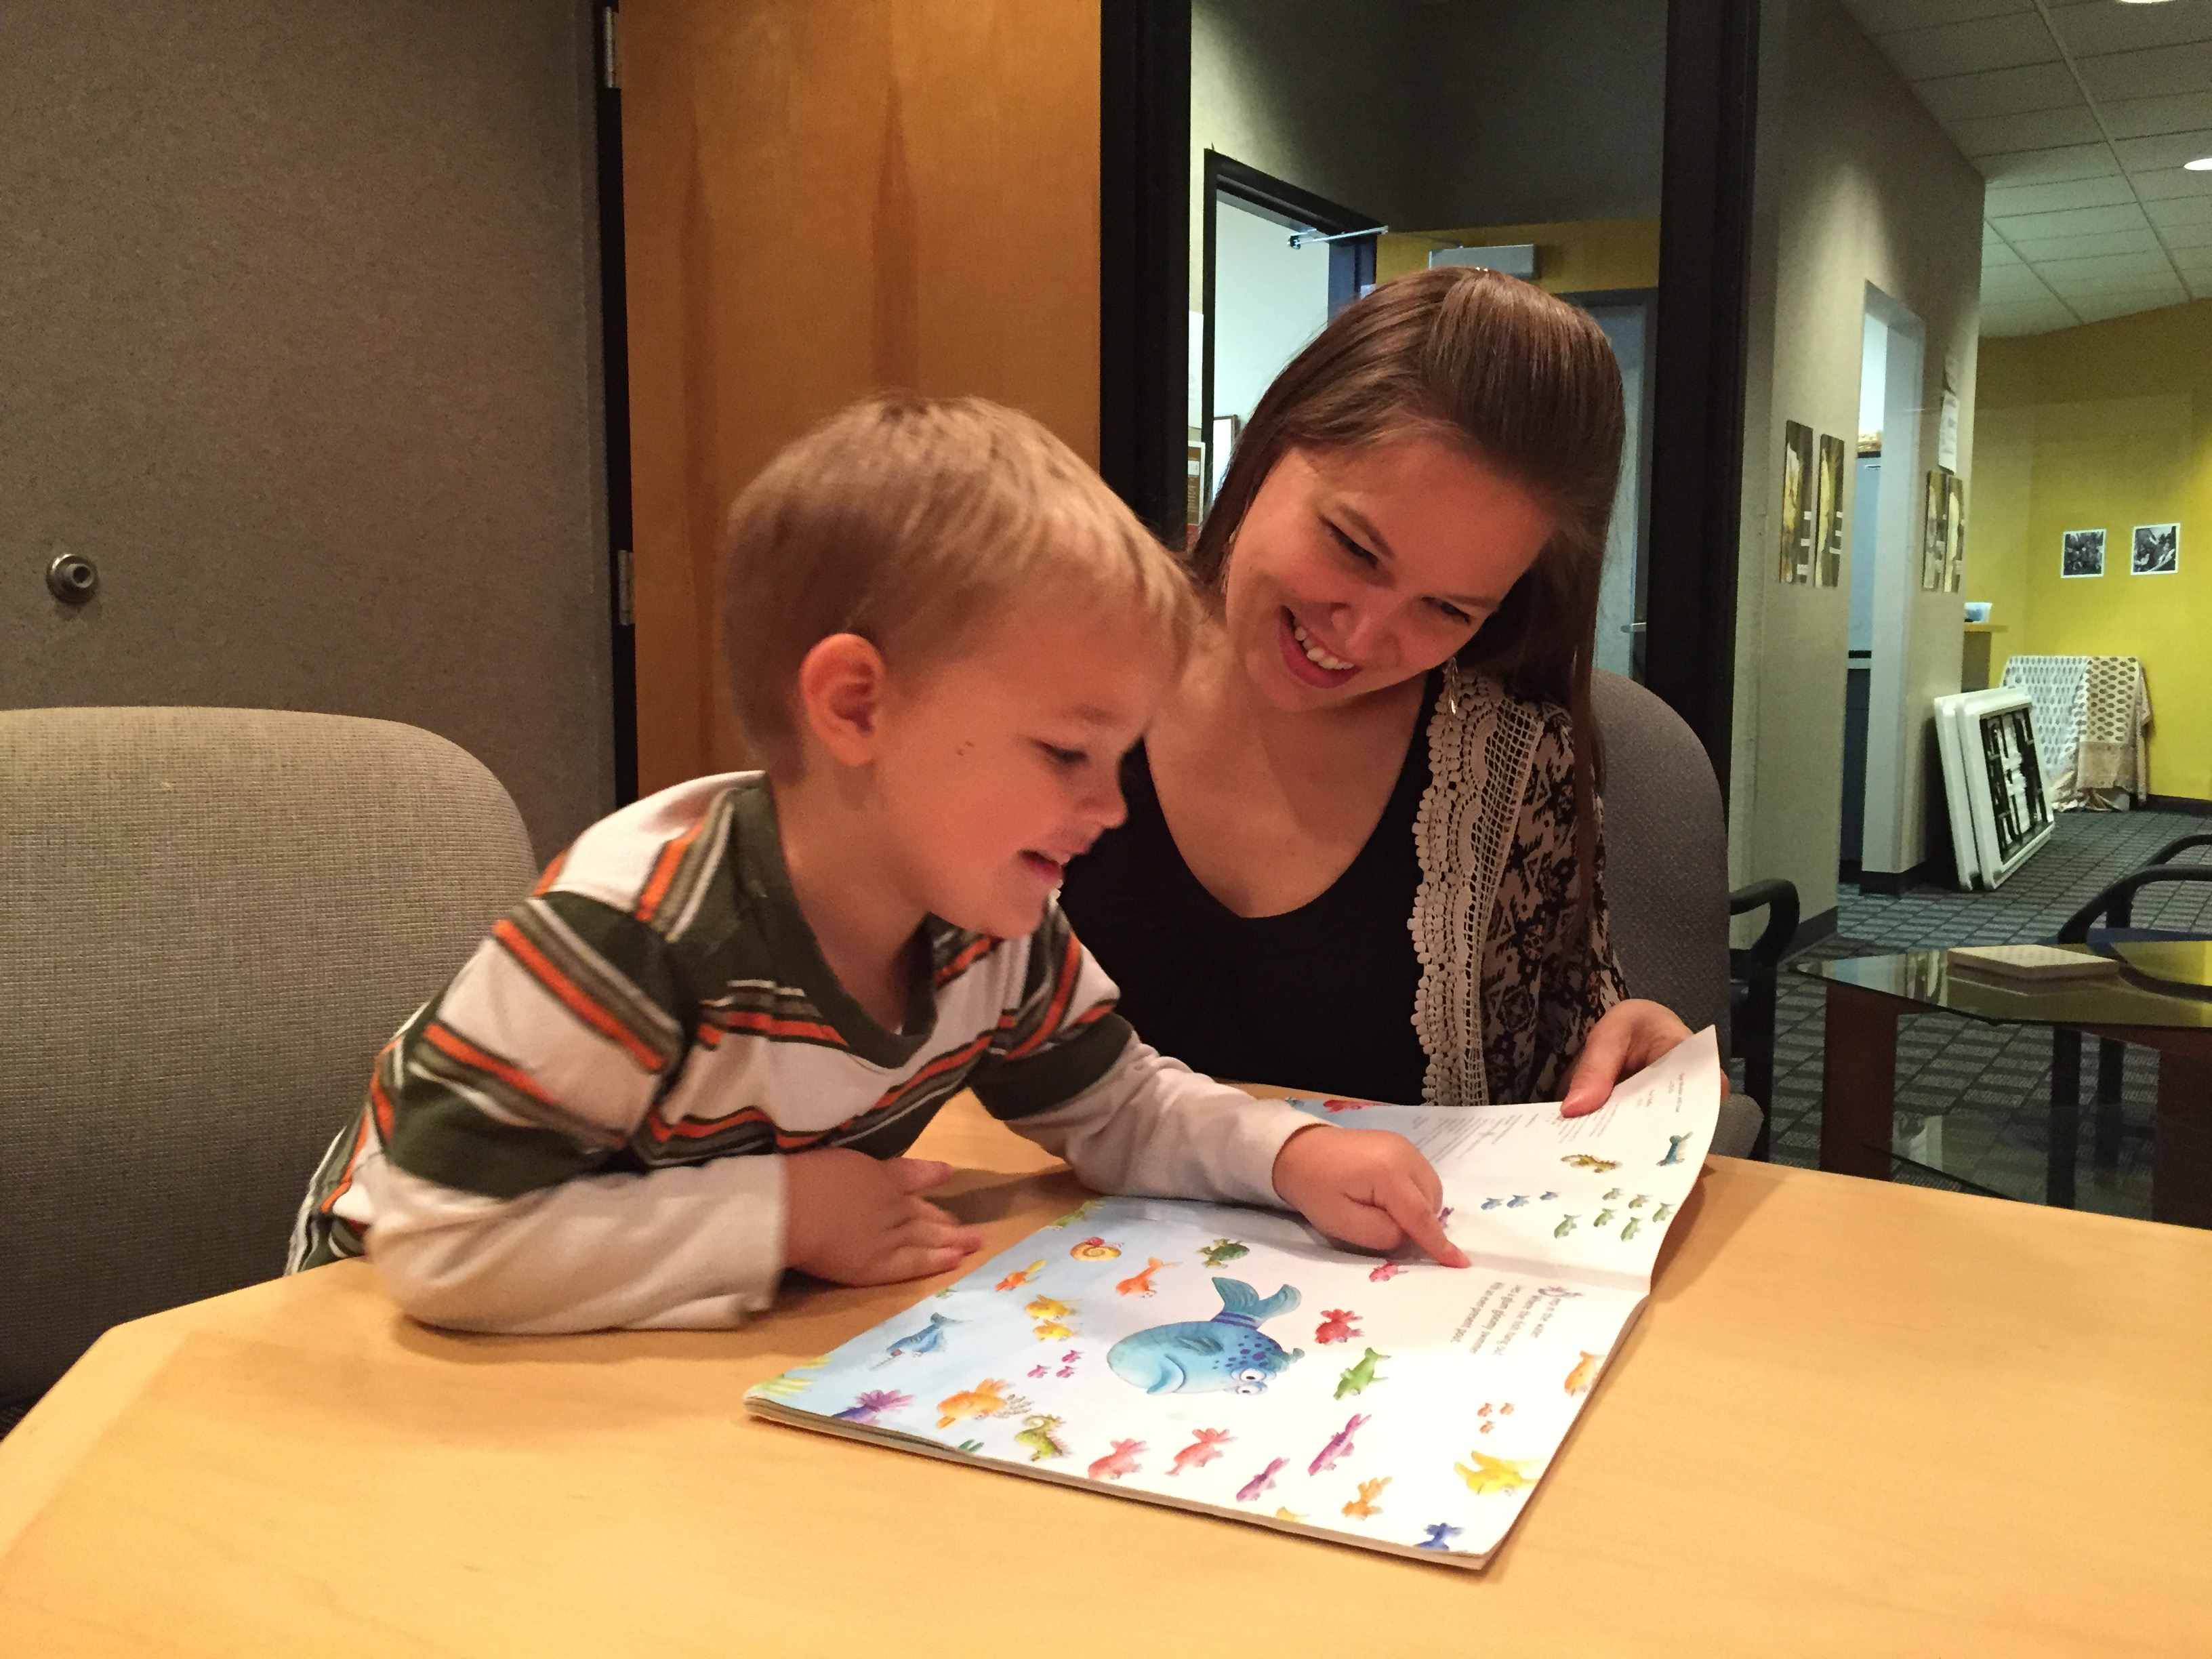 Dr. Courtney Seidel, Speech-Language Pathologist at the UW Speech and Hearing Clinic, reading with a child.